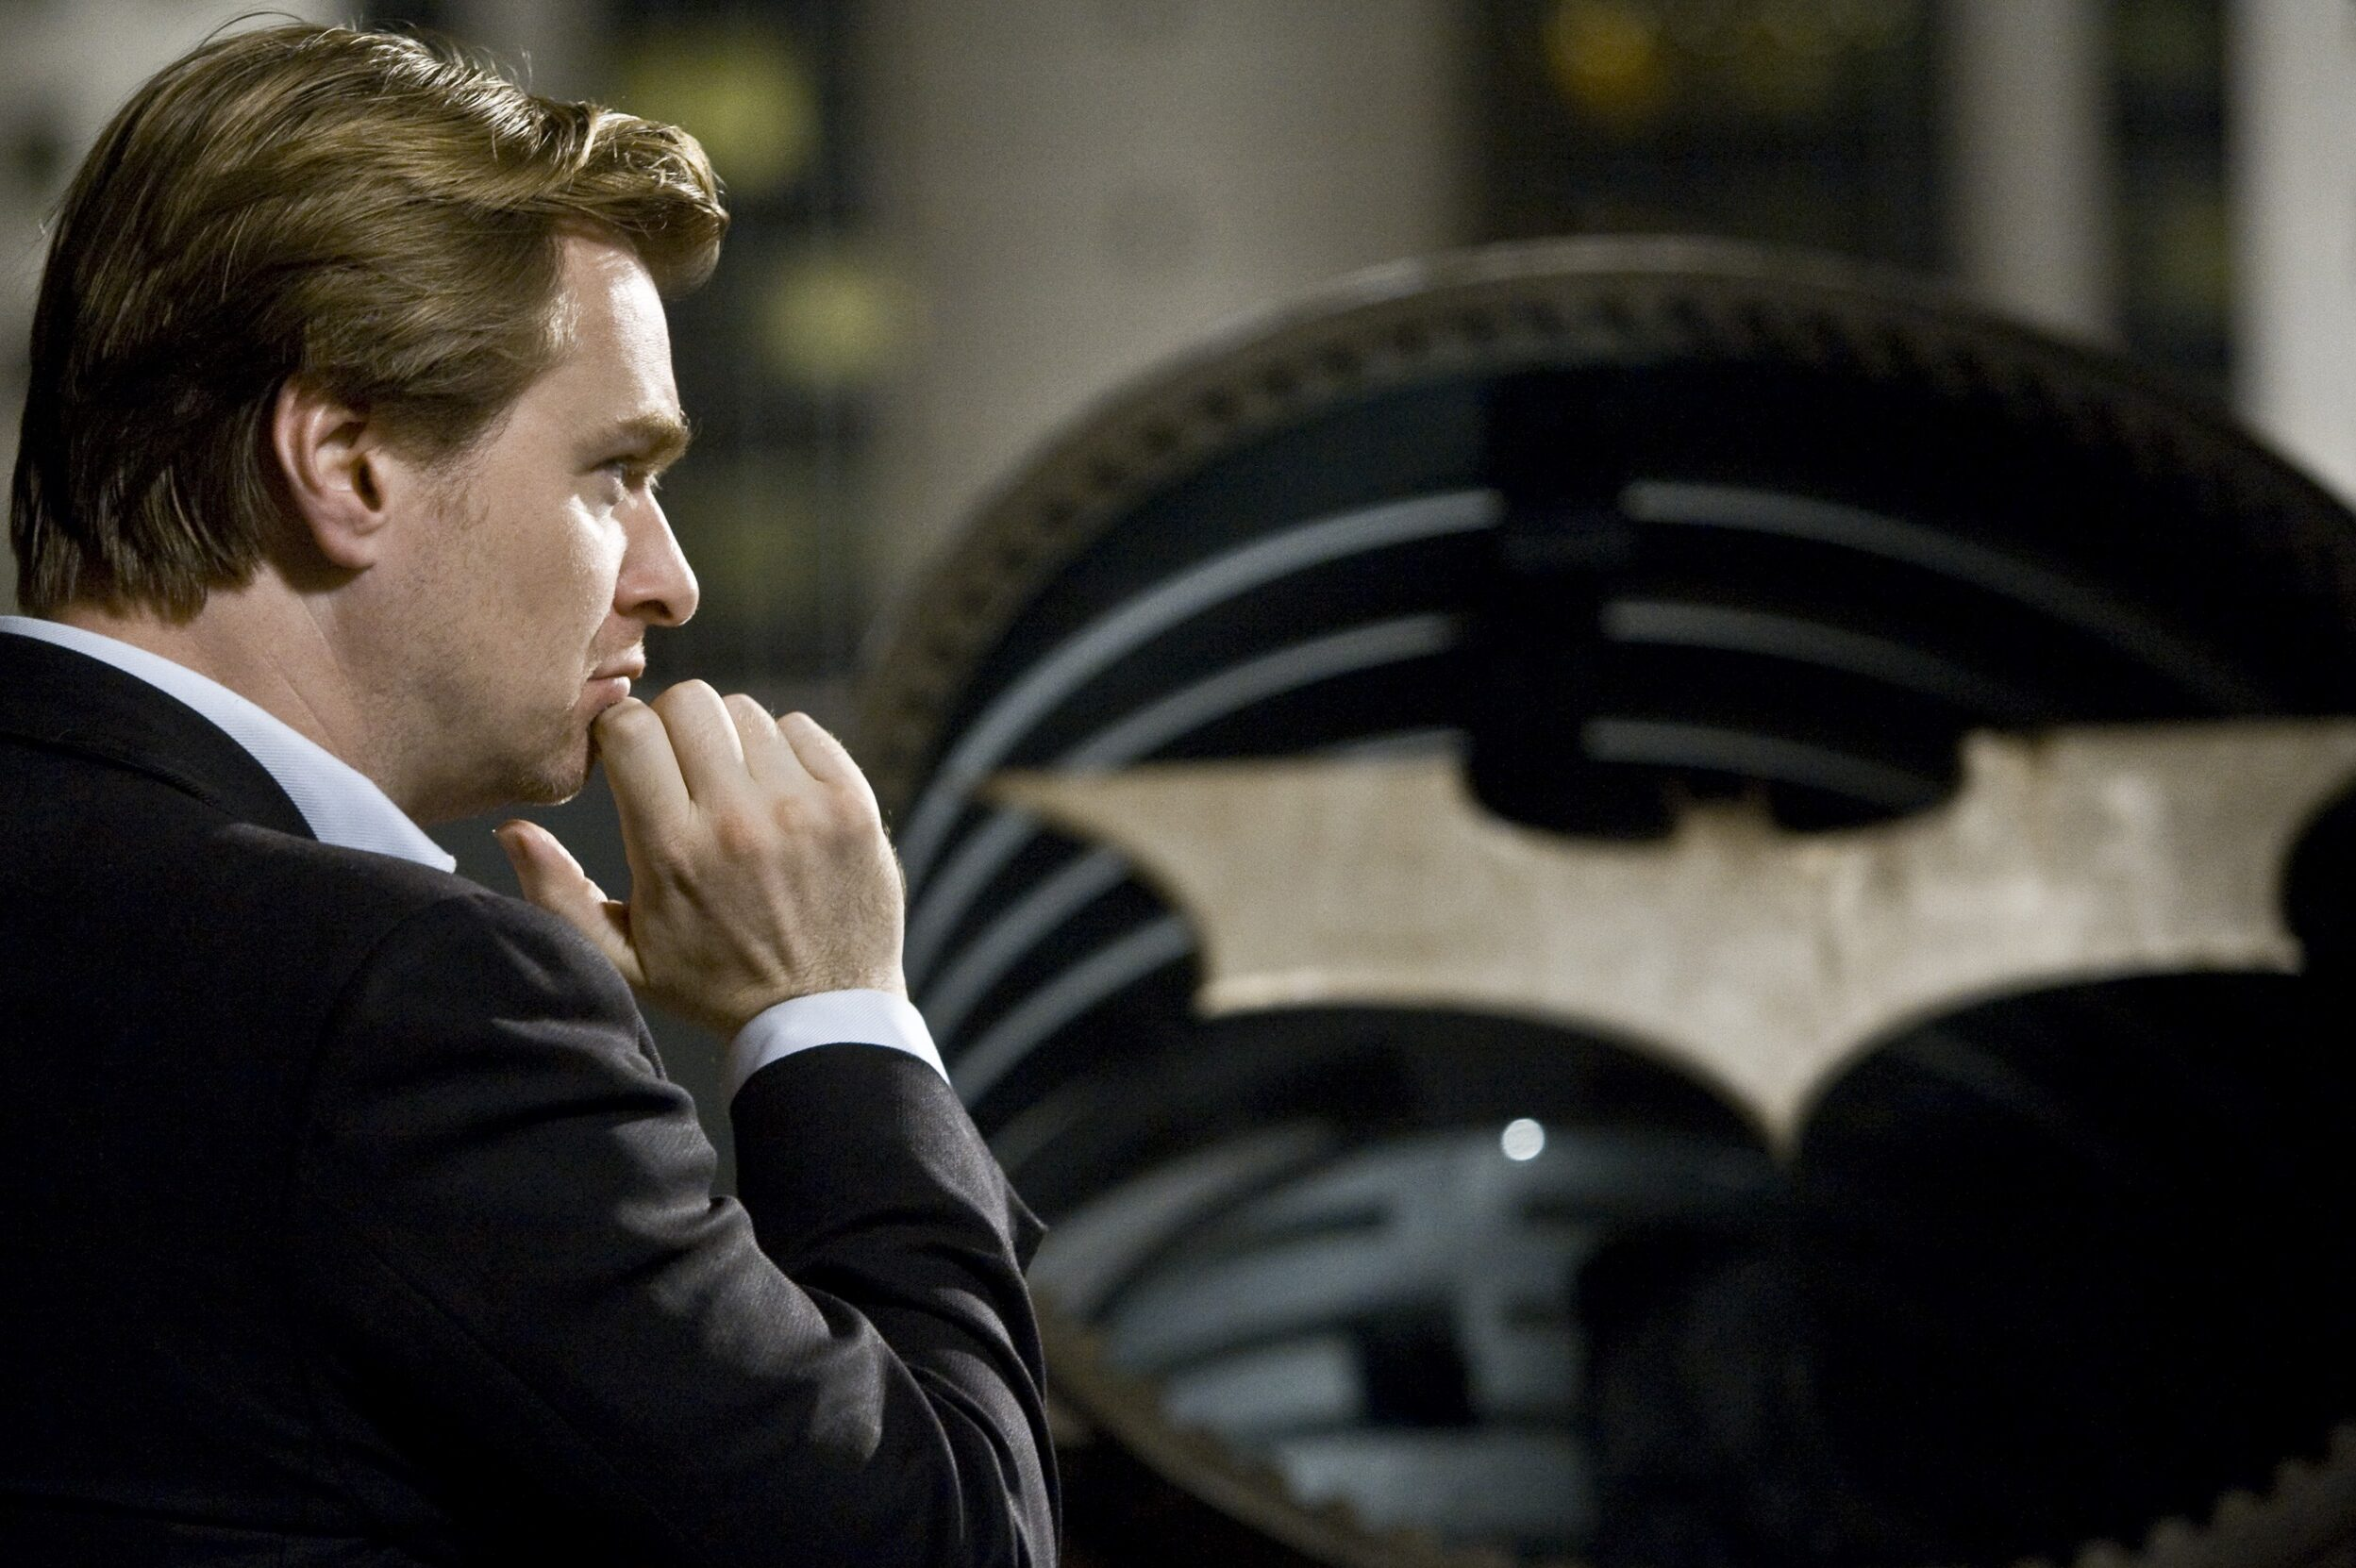 Exclusive: Christopher Nolan Returning To Direct More Batman